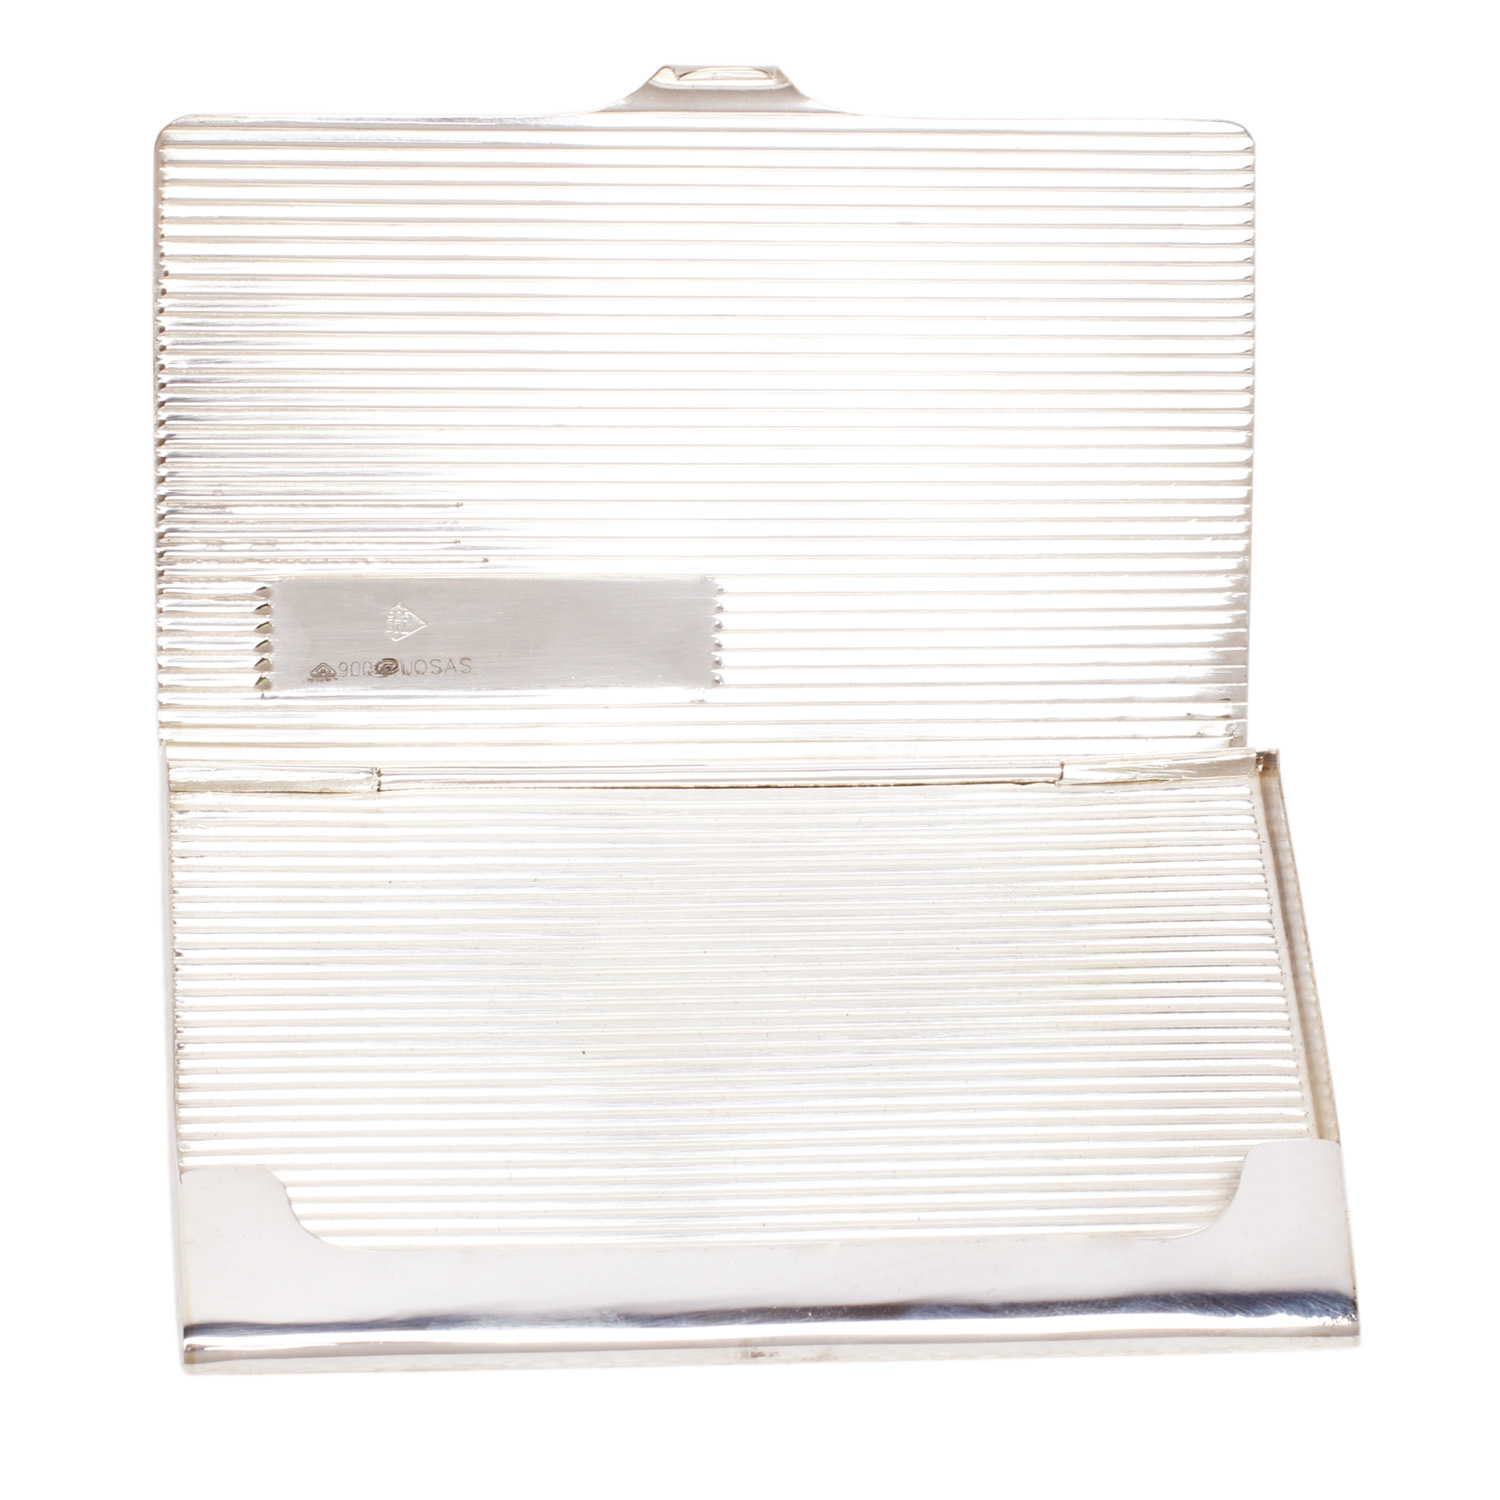 Silver Business Card Holder from the Inside